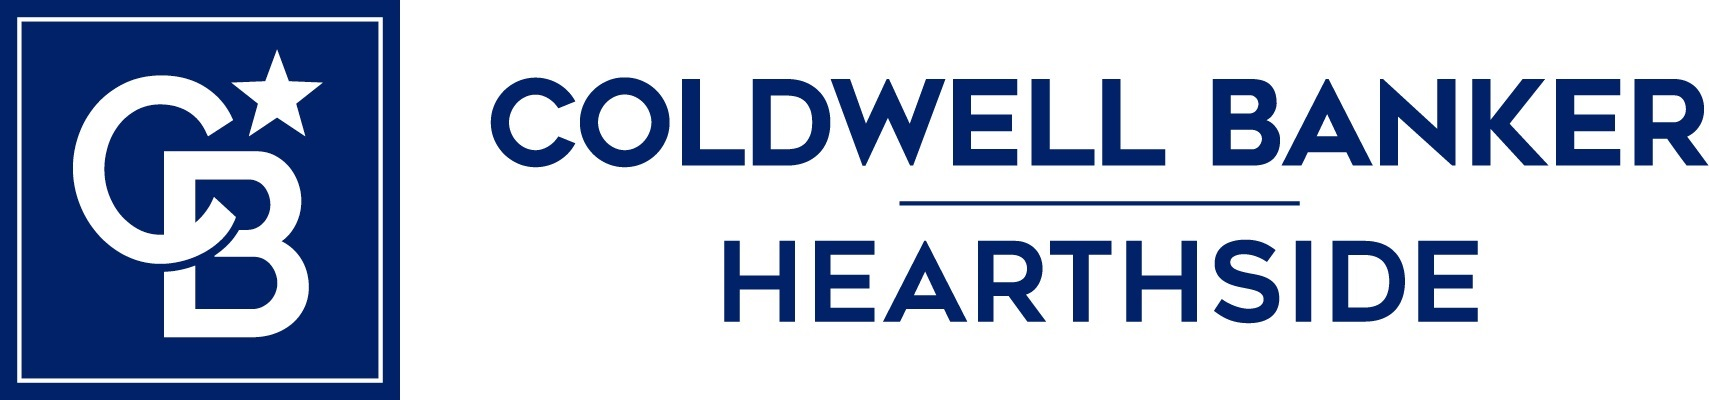 Mildred Thomas - Coldwell Banker Hearthside